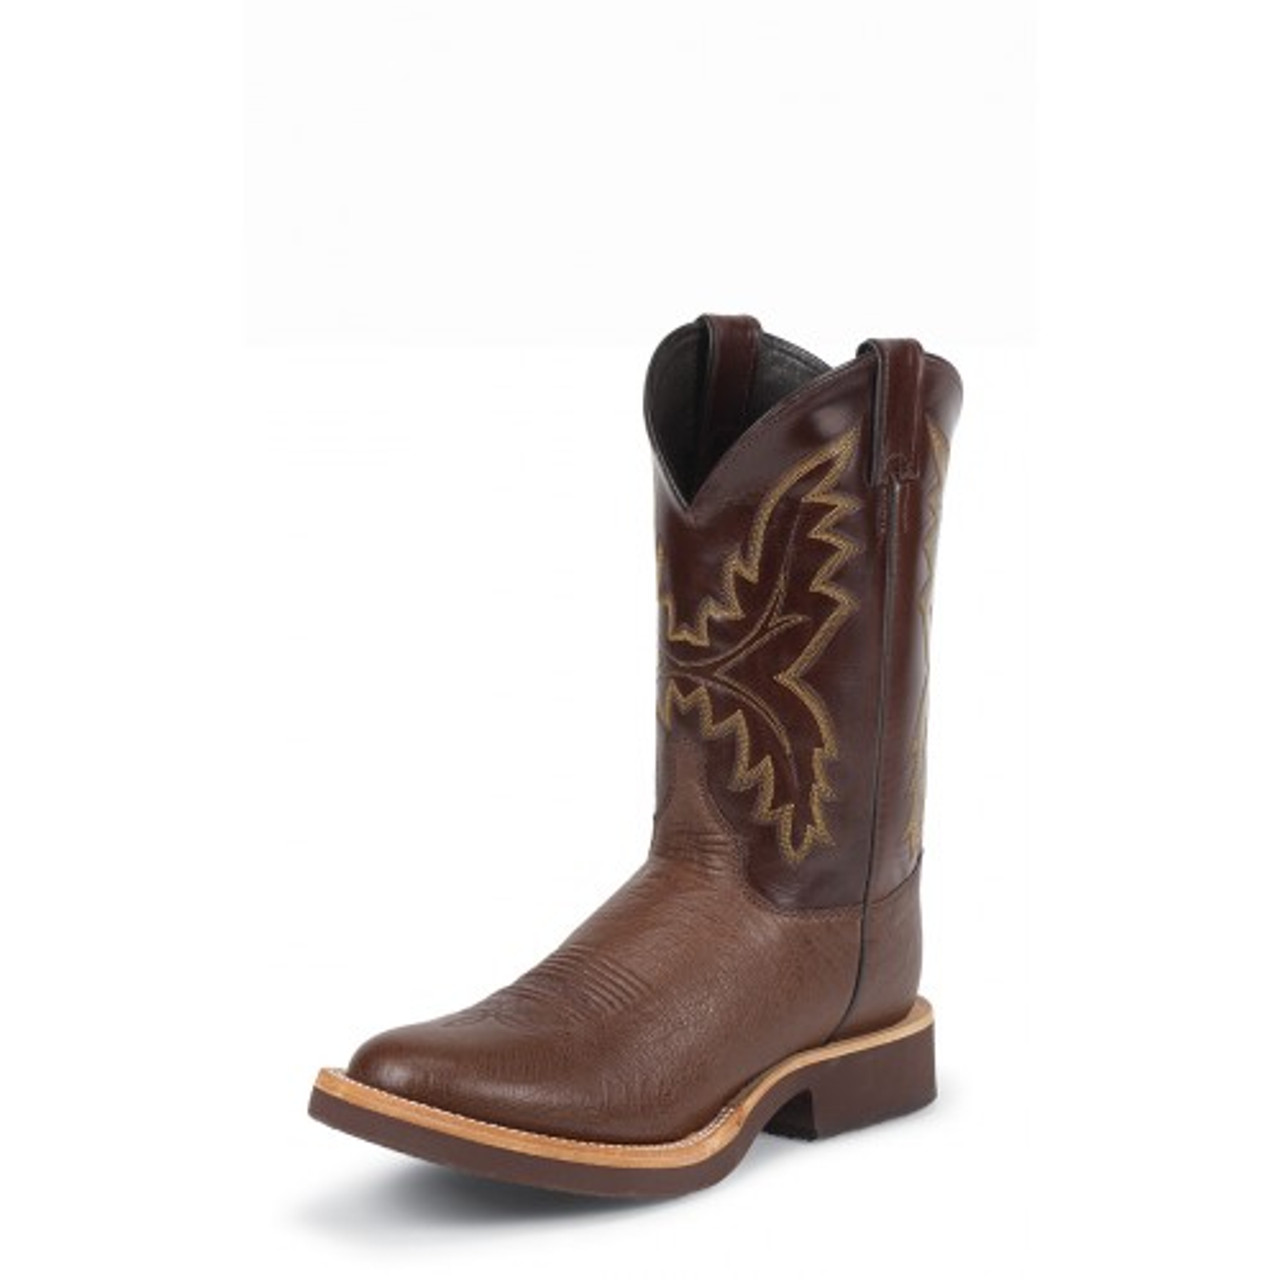 090e123d7a3 Justin Men's Western Exotic - Paluxy Antique Brown Smooth Ostrich /  Chocolate Calfino